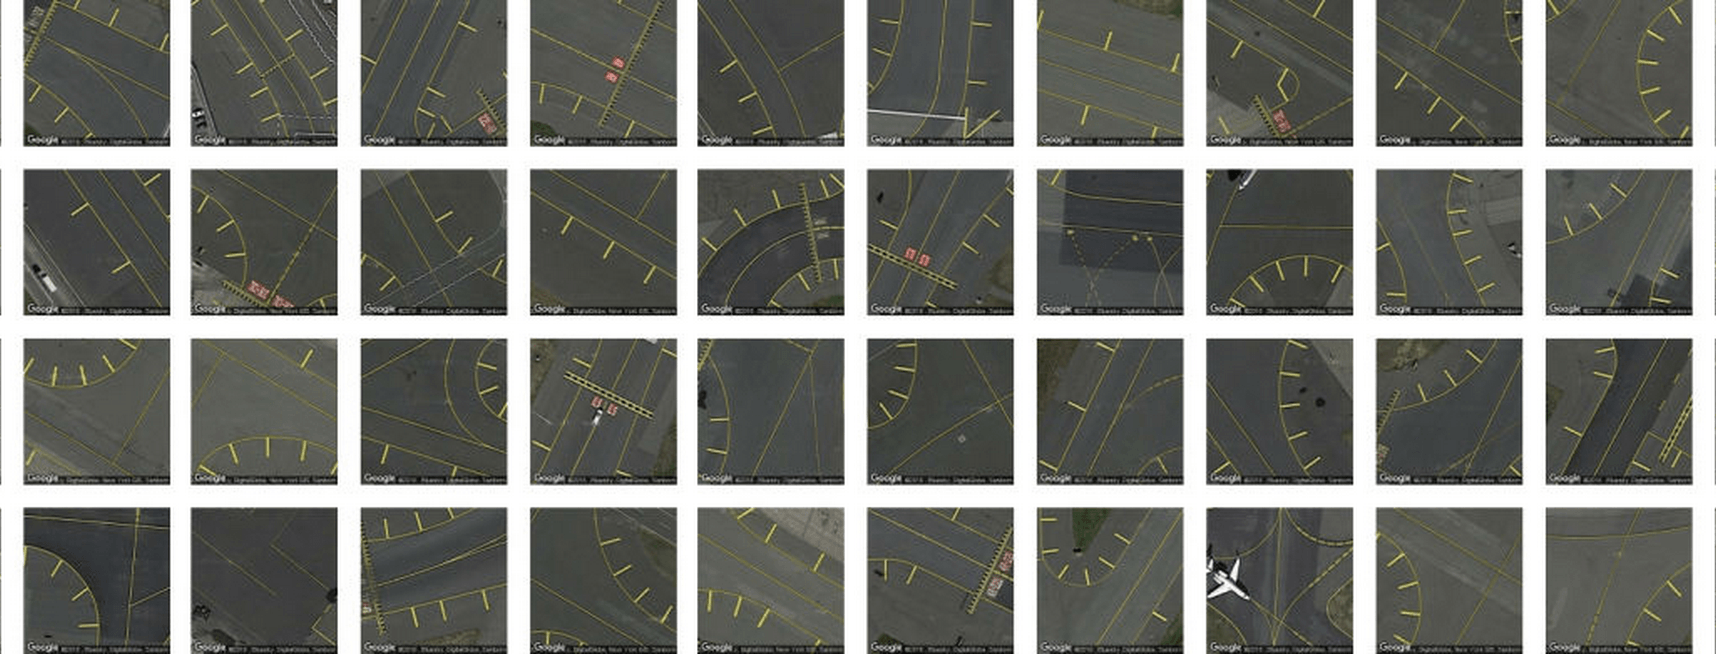 roads gathered with terrapattern